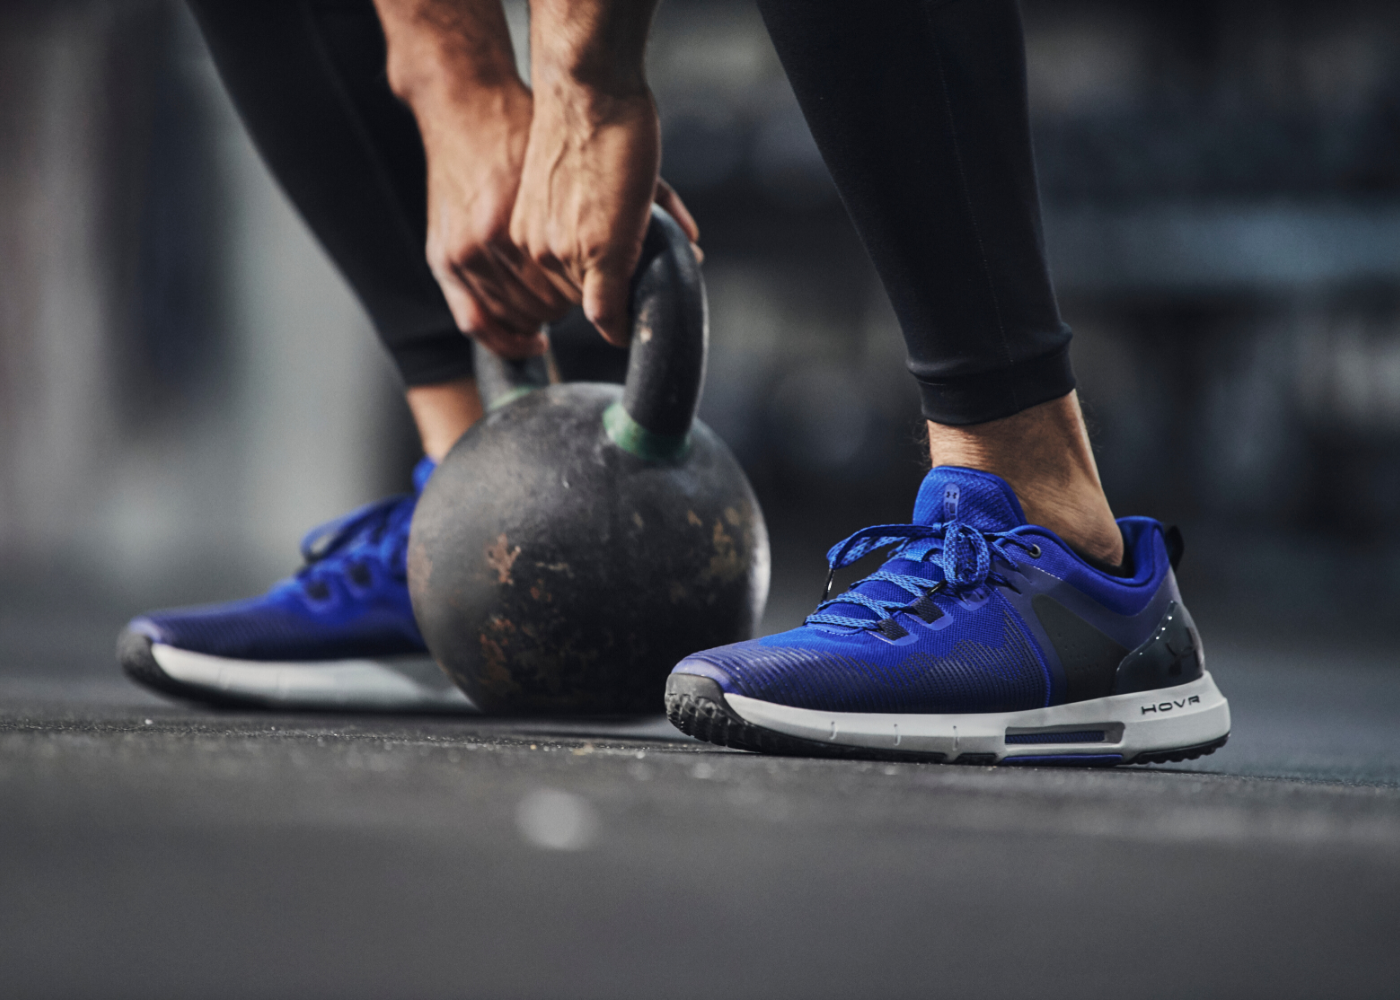 Starting a new HIIT or cardio workout? The #UAHOVR Rise will see you through every interval